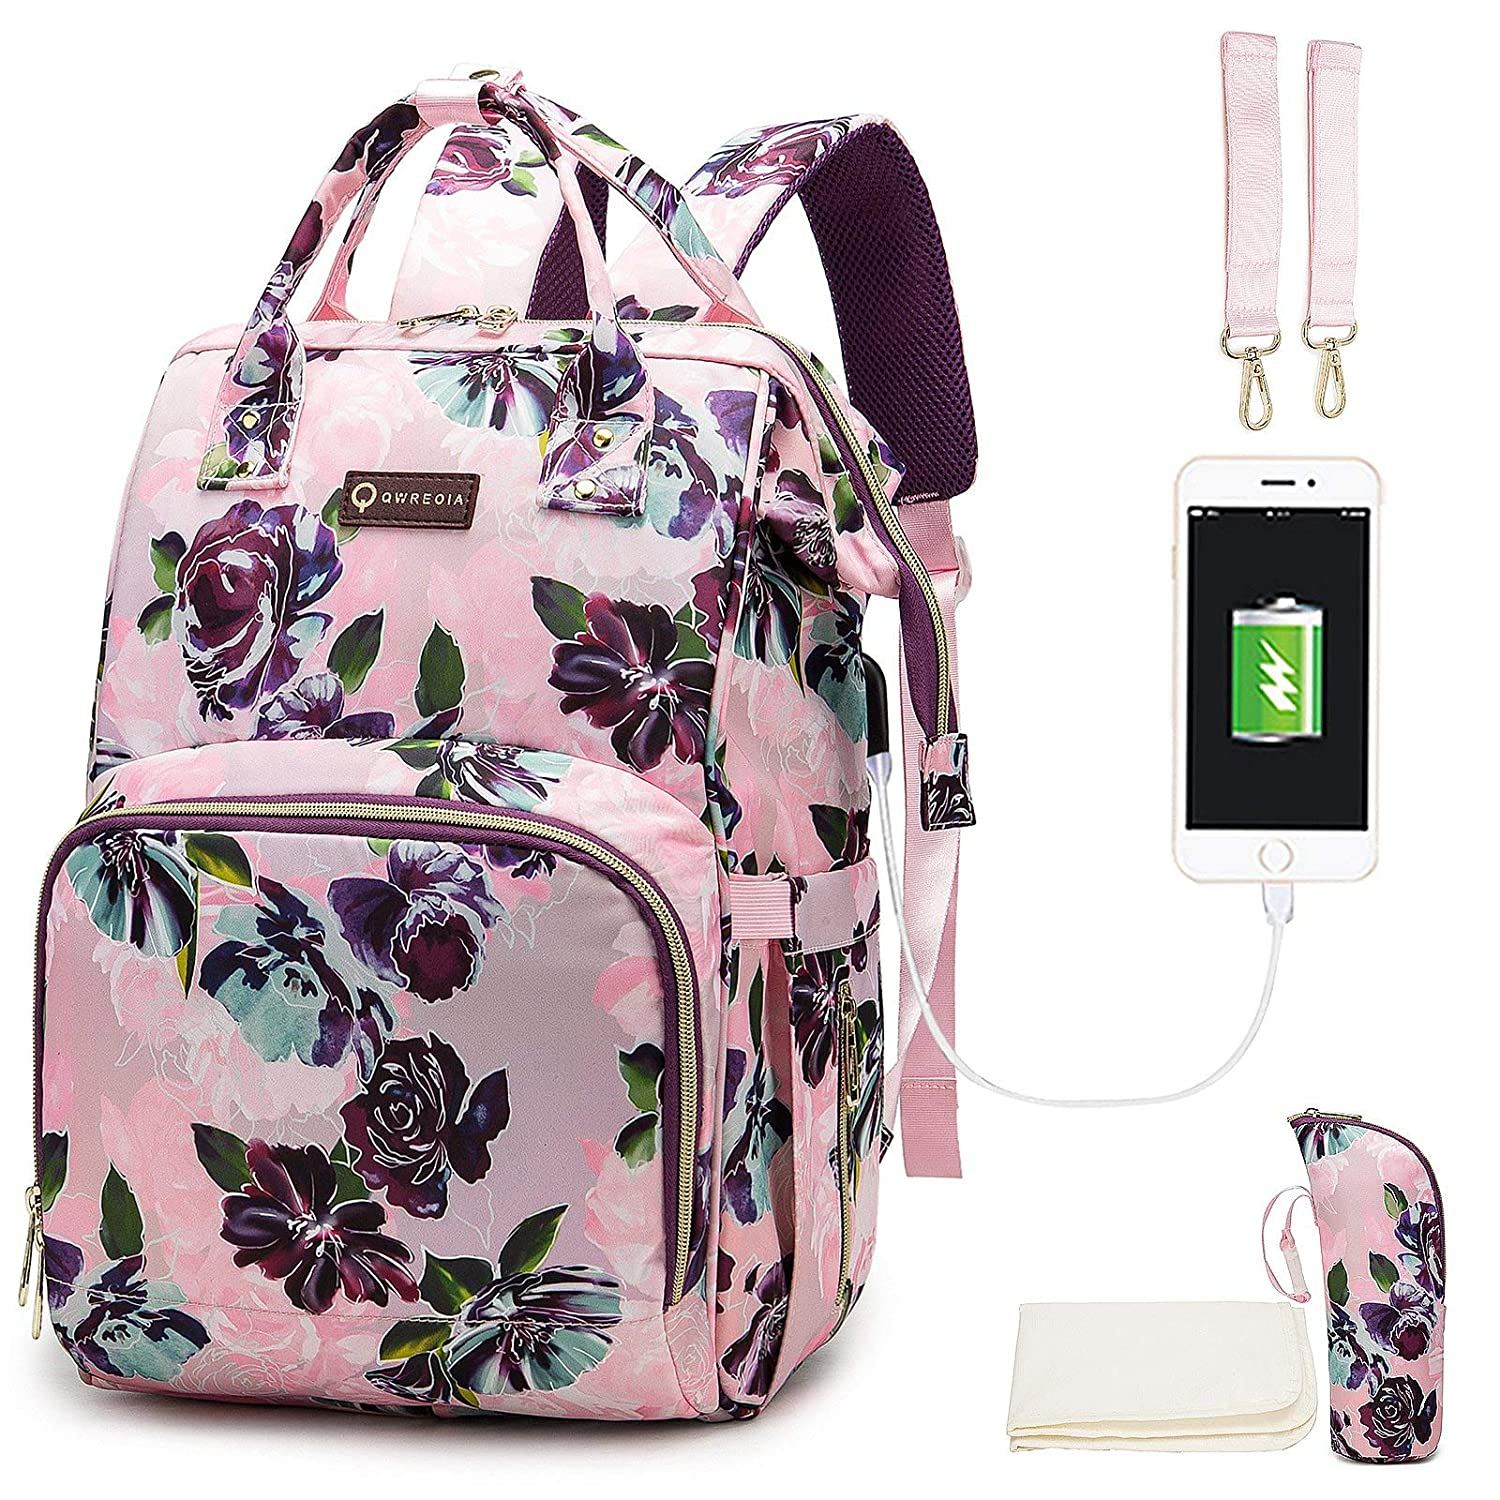 Floral Diaper Bags for Baby Girl,Baby Bag with USB Charging Port Stroller Straps and Insulated Pocket for Women/Girls/Mum/Toddler by Qwreoia (Rose Flower Pattern)